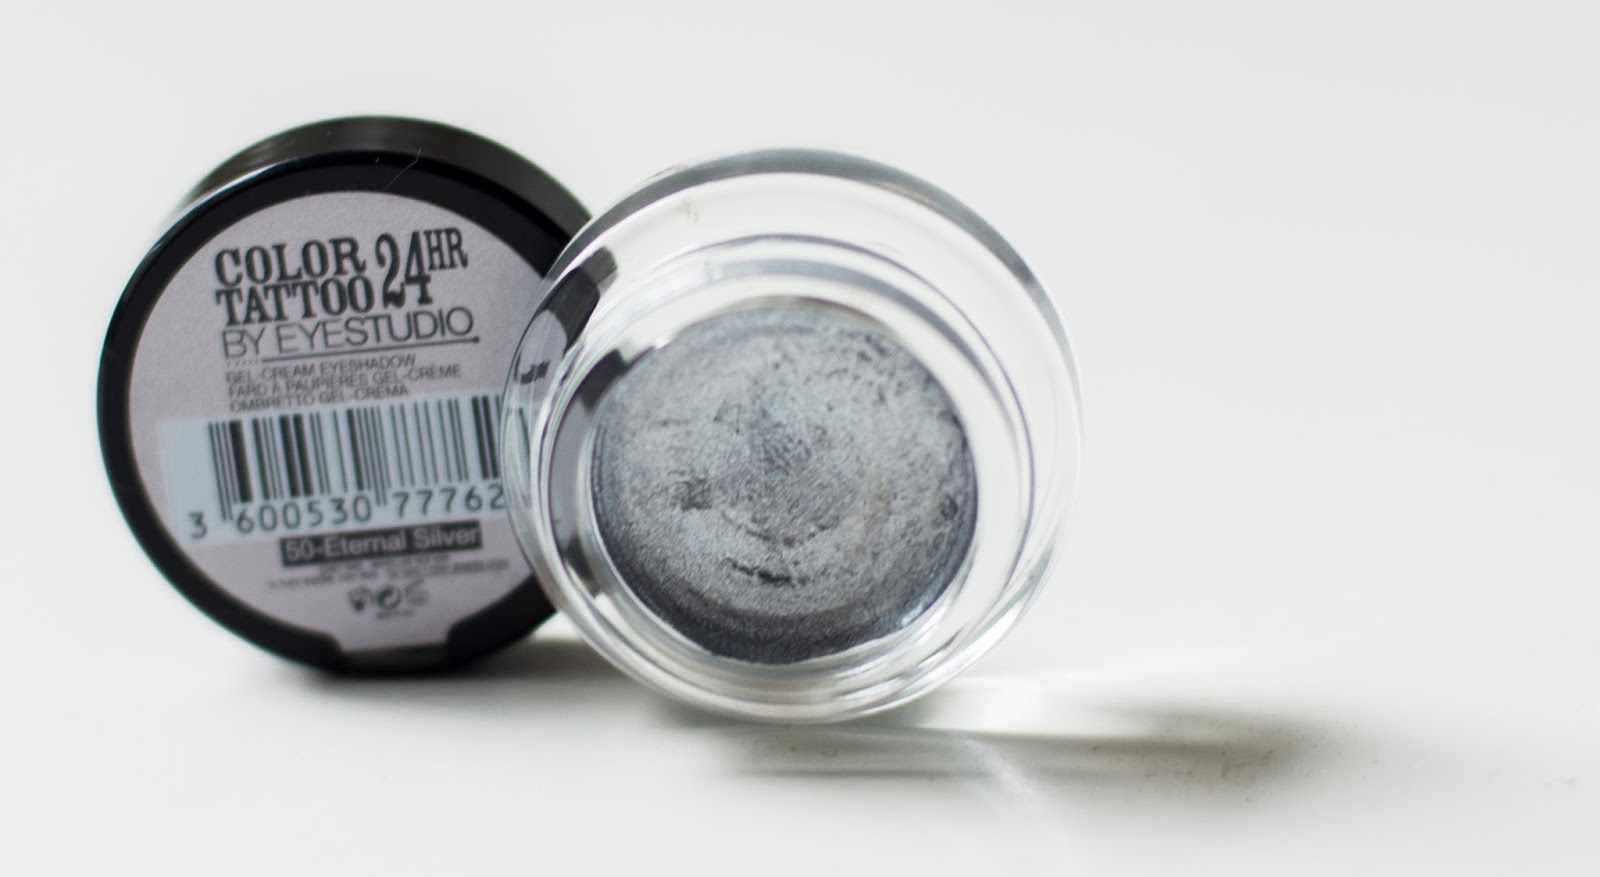 maybelline color tattoo, silver